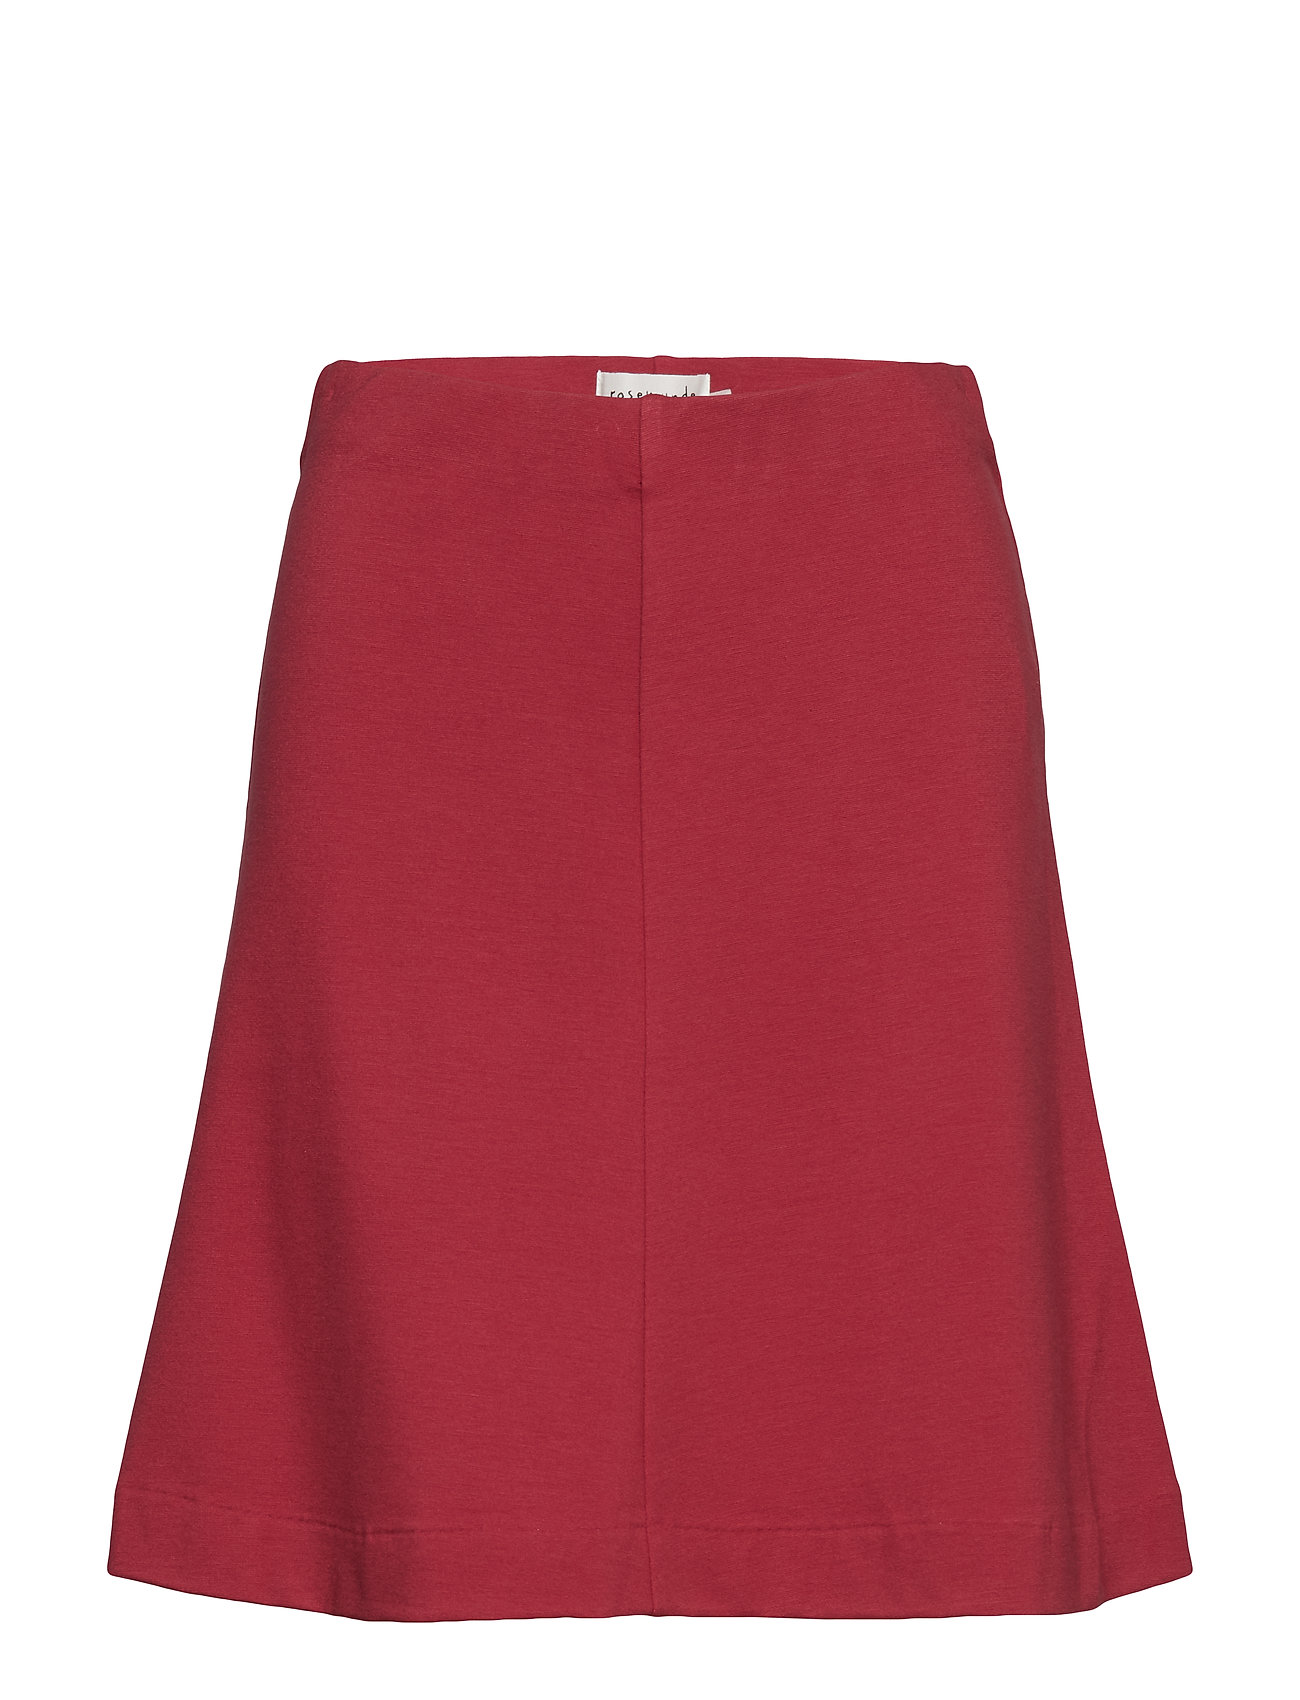 Rosemunde Skirt - SCARLET RED